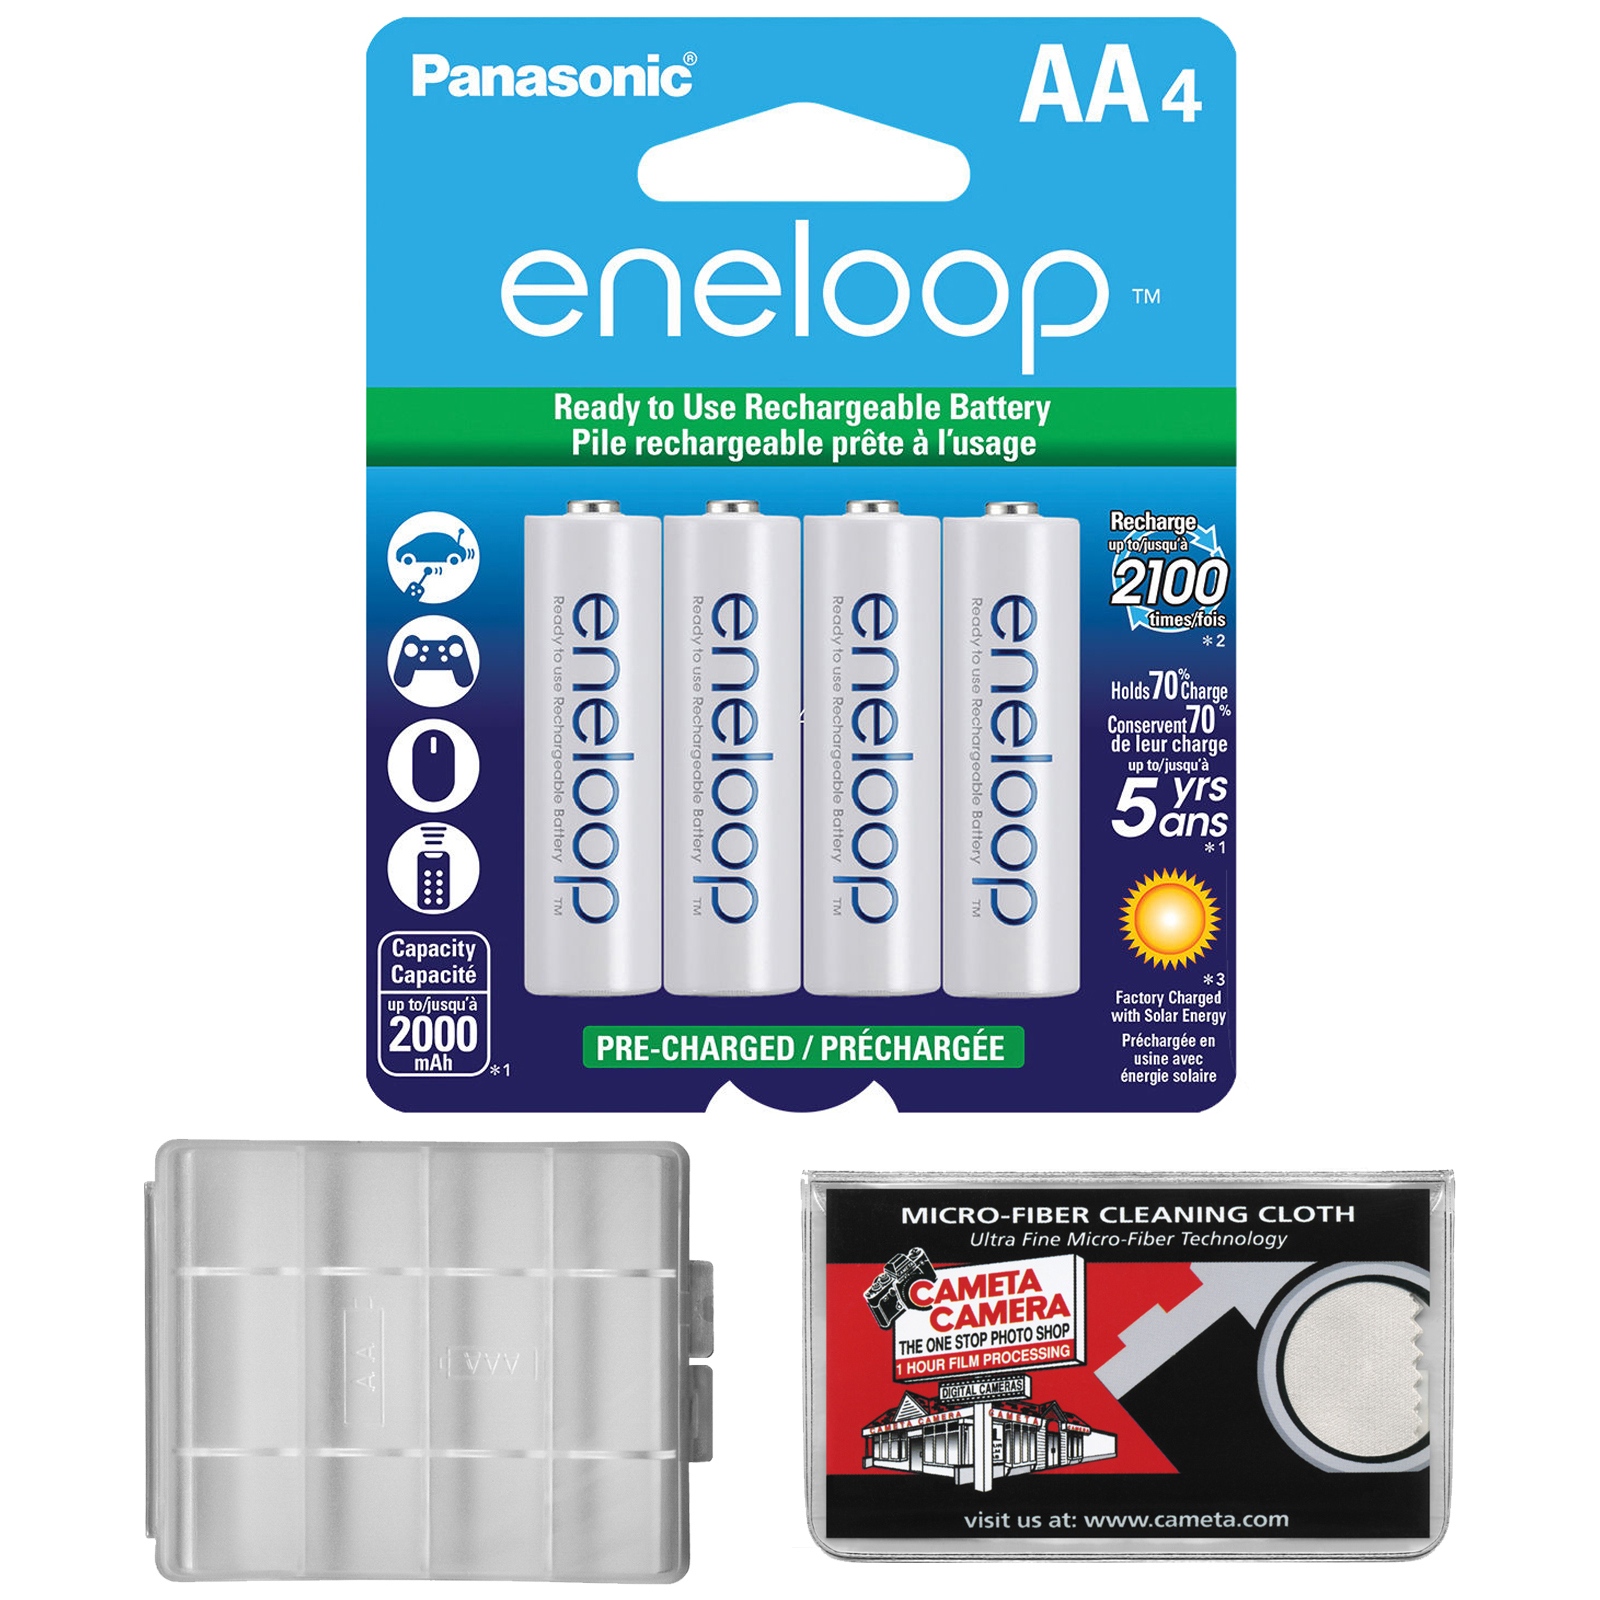 Panasonic eneloop (4) AA 2000mAh Pre-Charged NiMH Rechargeable Batteries with AA Battery Case + Microfiber Cleaning Cloth